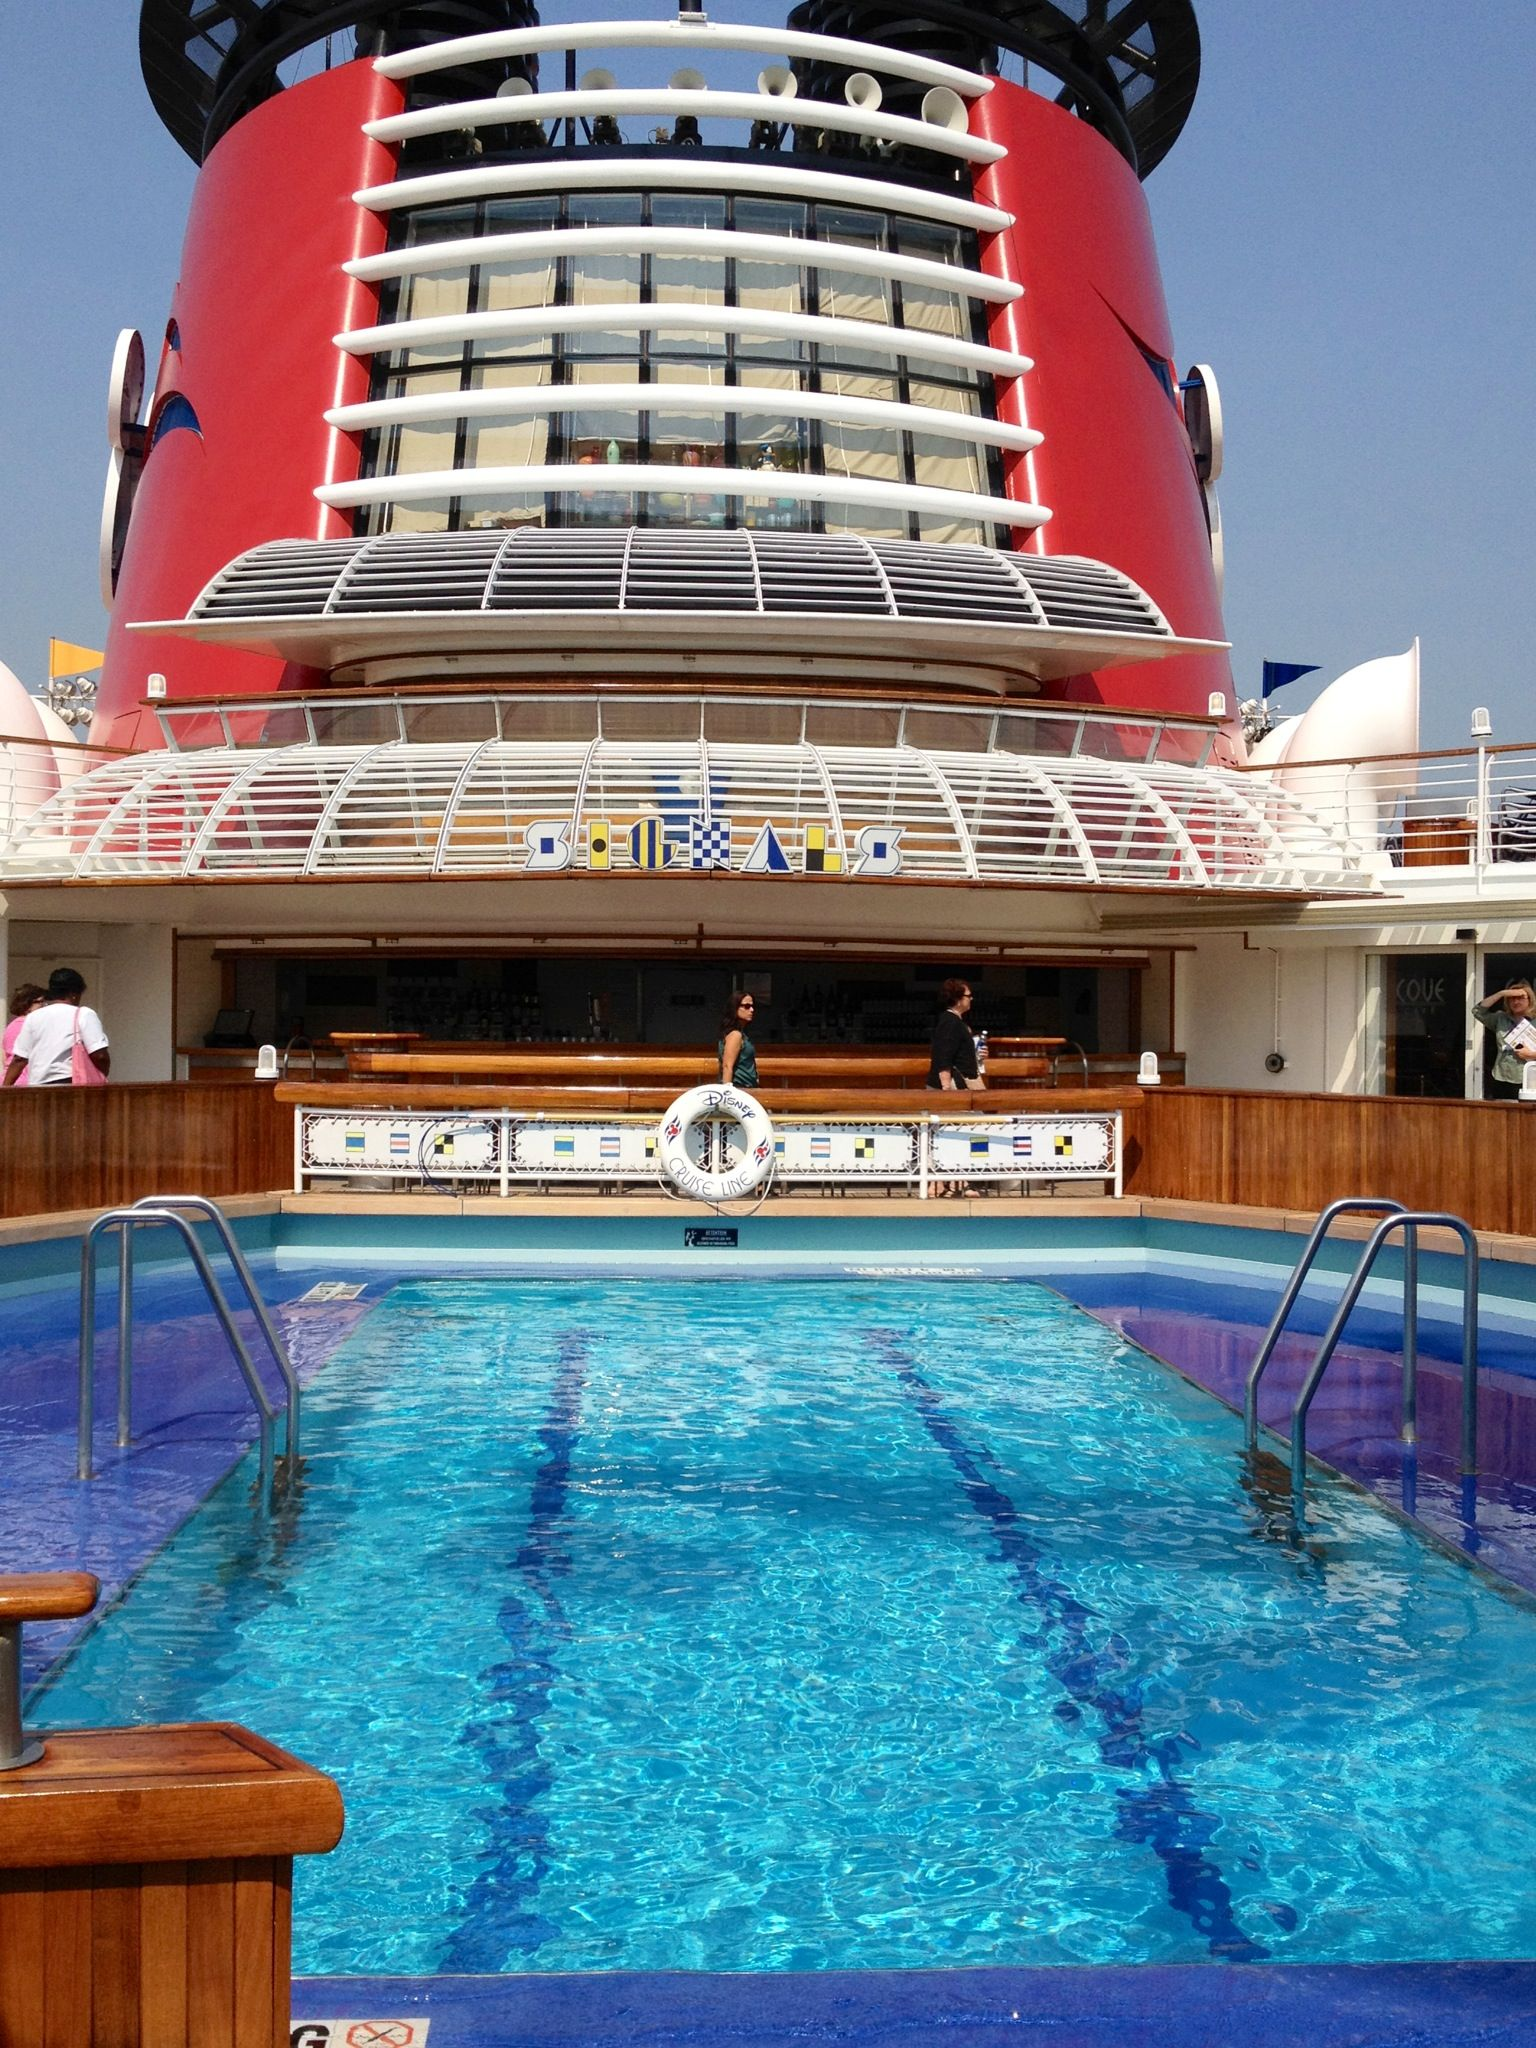 Pool Areas Aboard The Disney Magic Cruise Ship: Pin On Disney Cruiseline